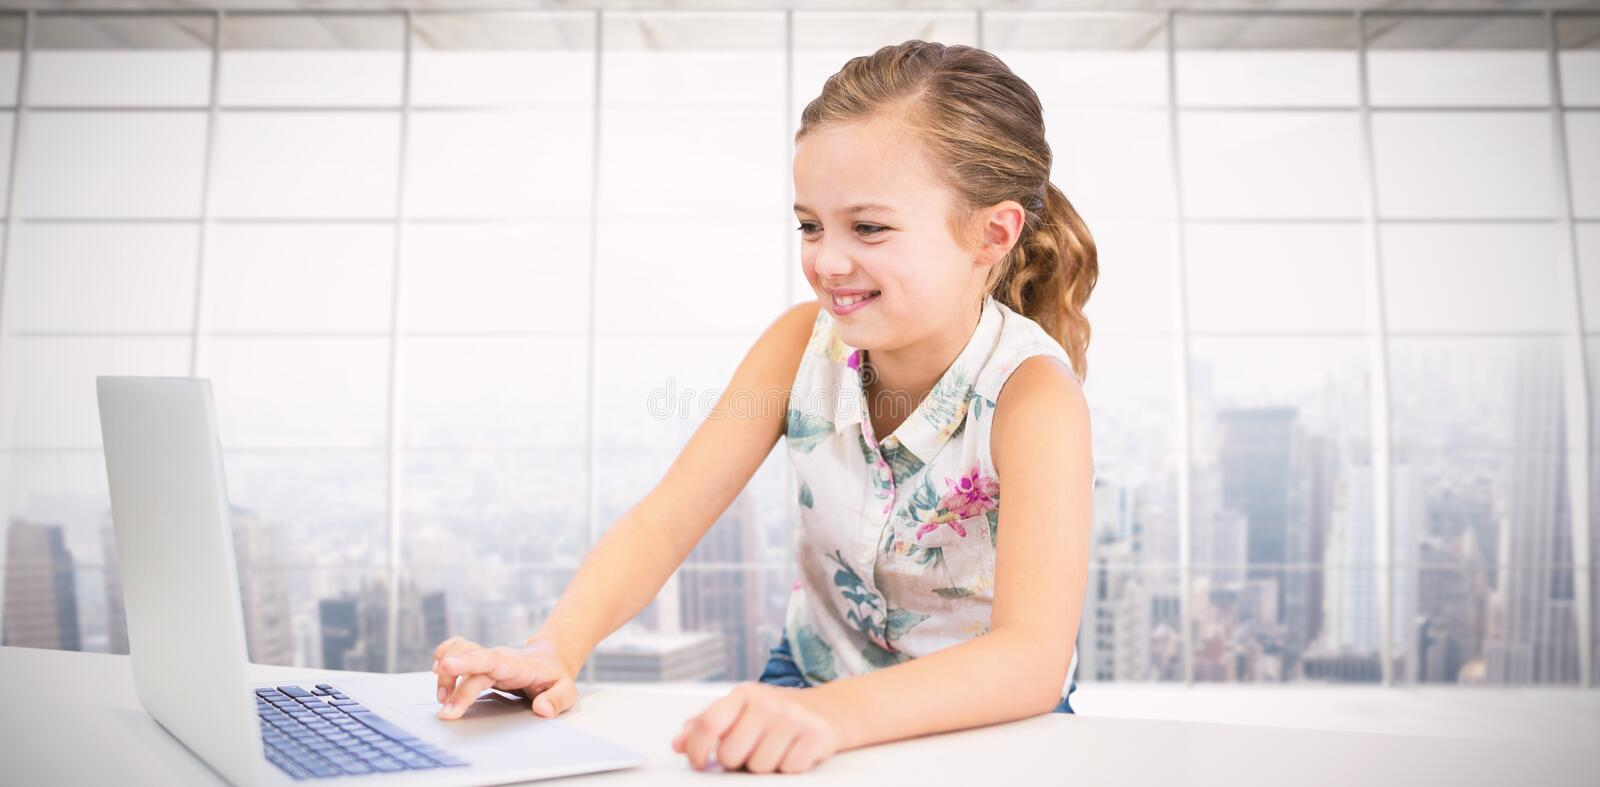 Composite image of girl using laptop at table stock photography